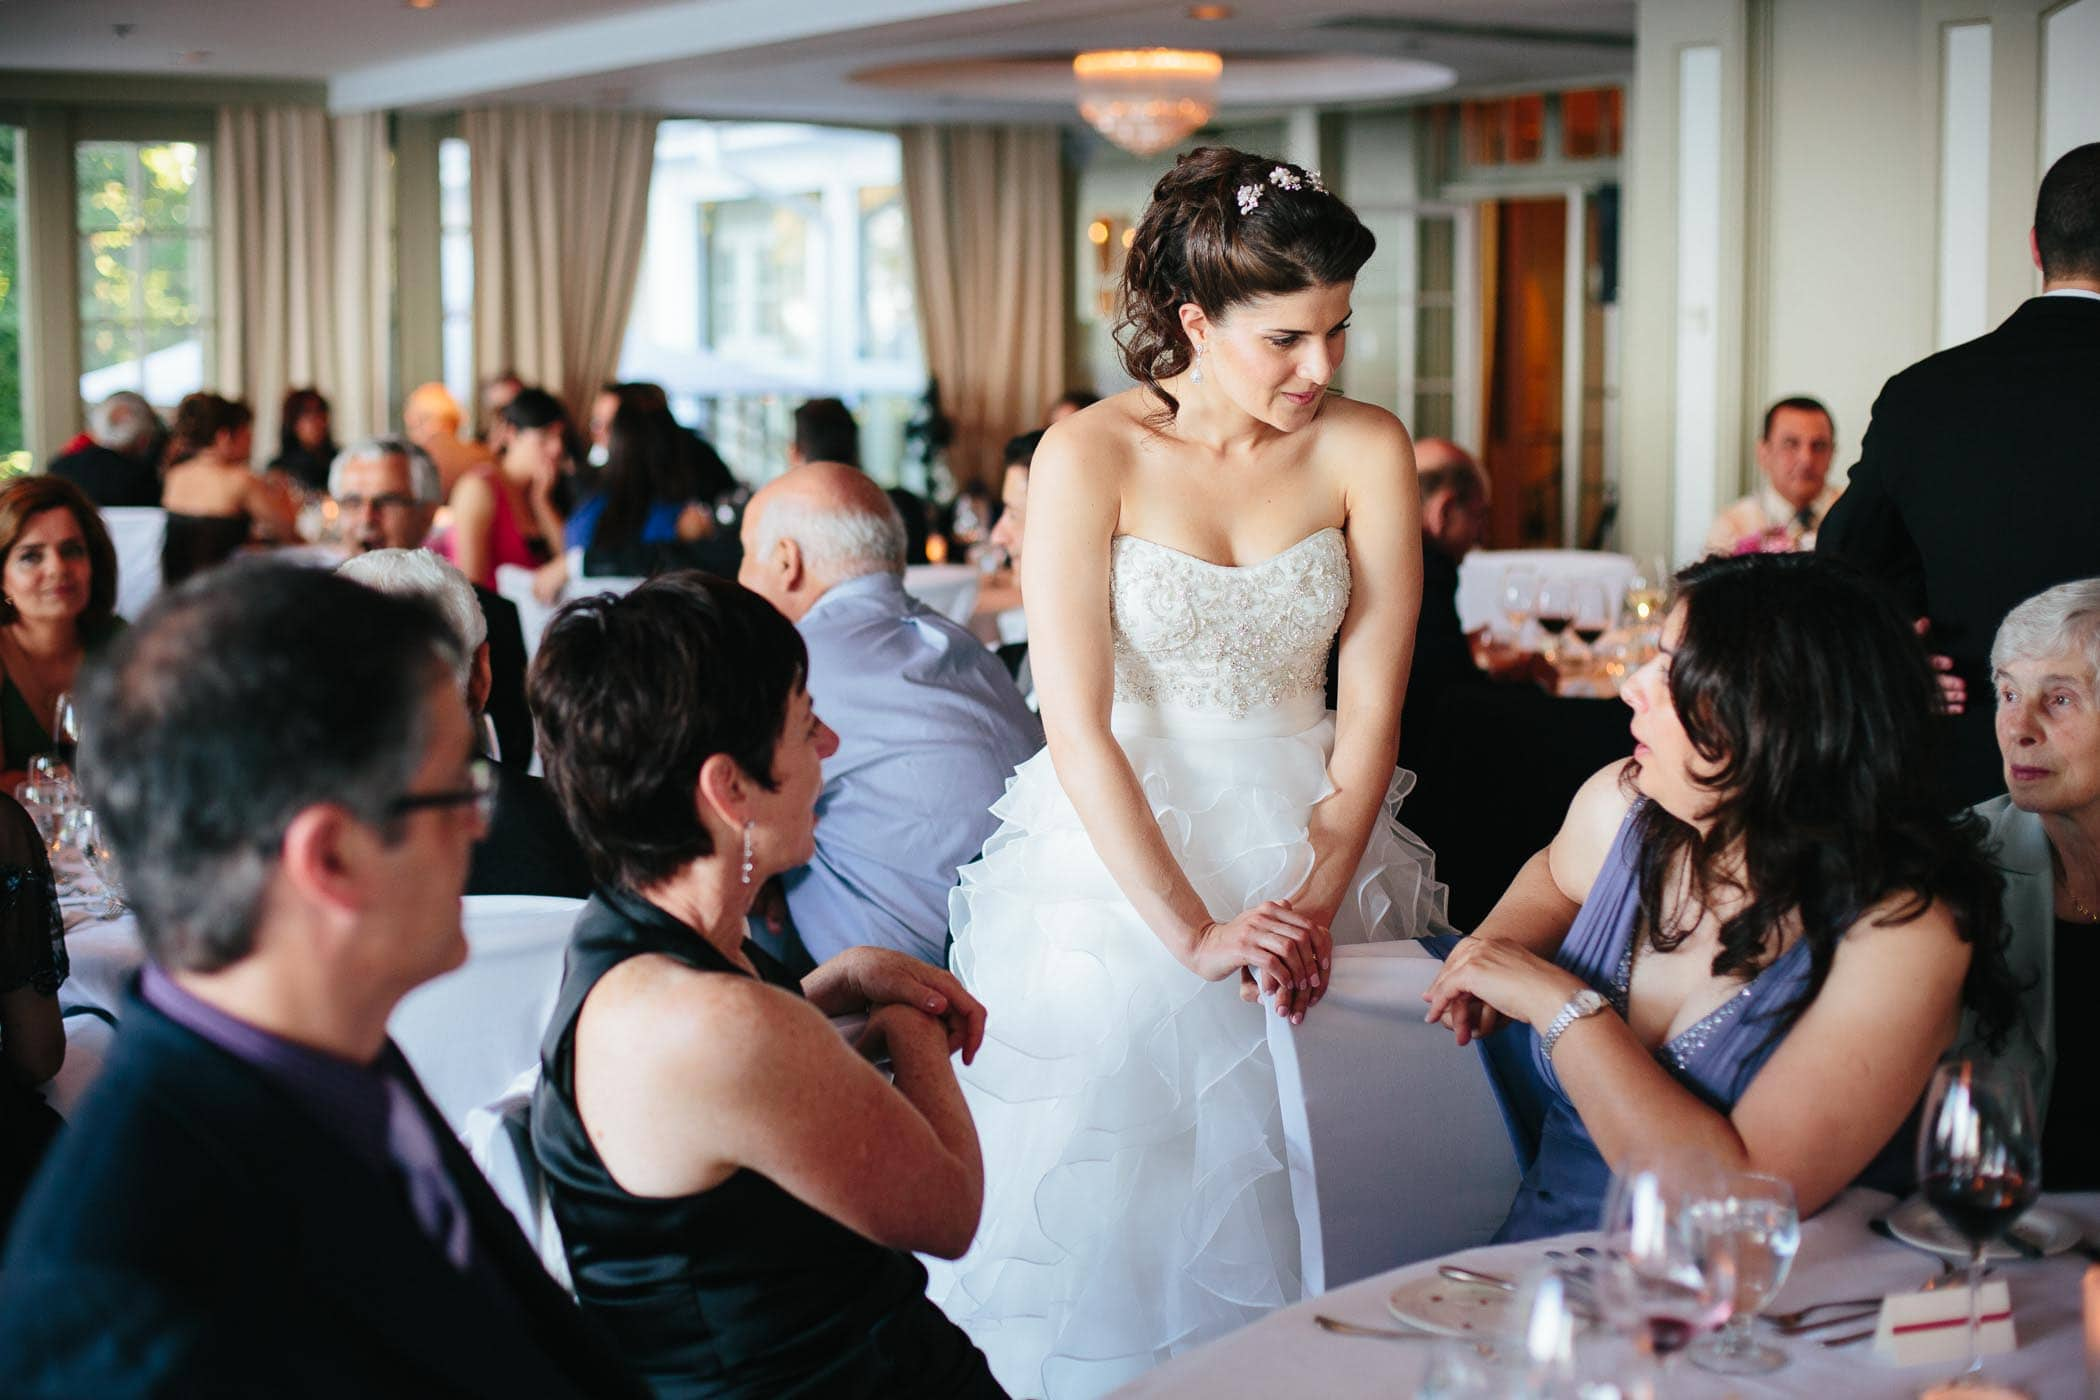 The bride leans on chair back talking to guests at The Toronto Hunt club wedding reception hall.